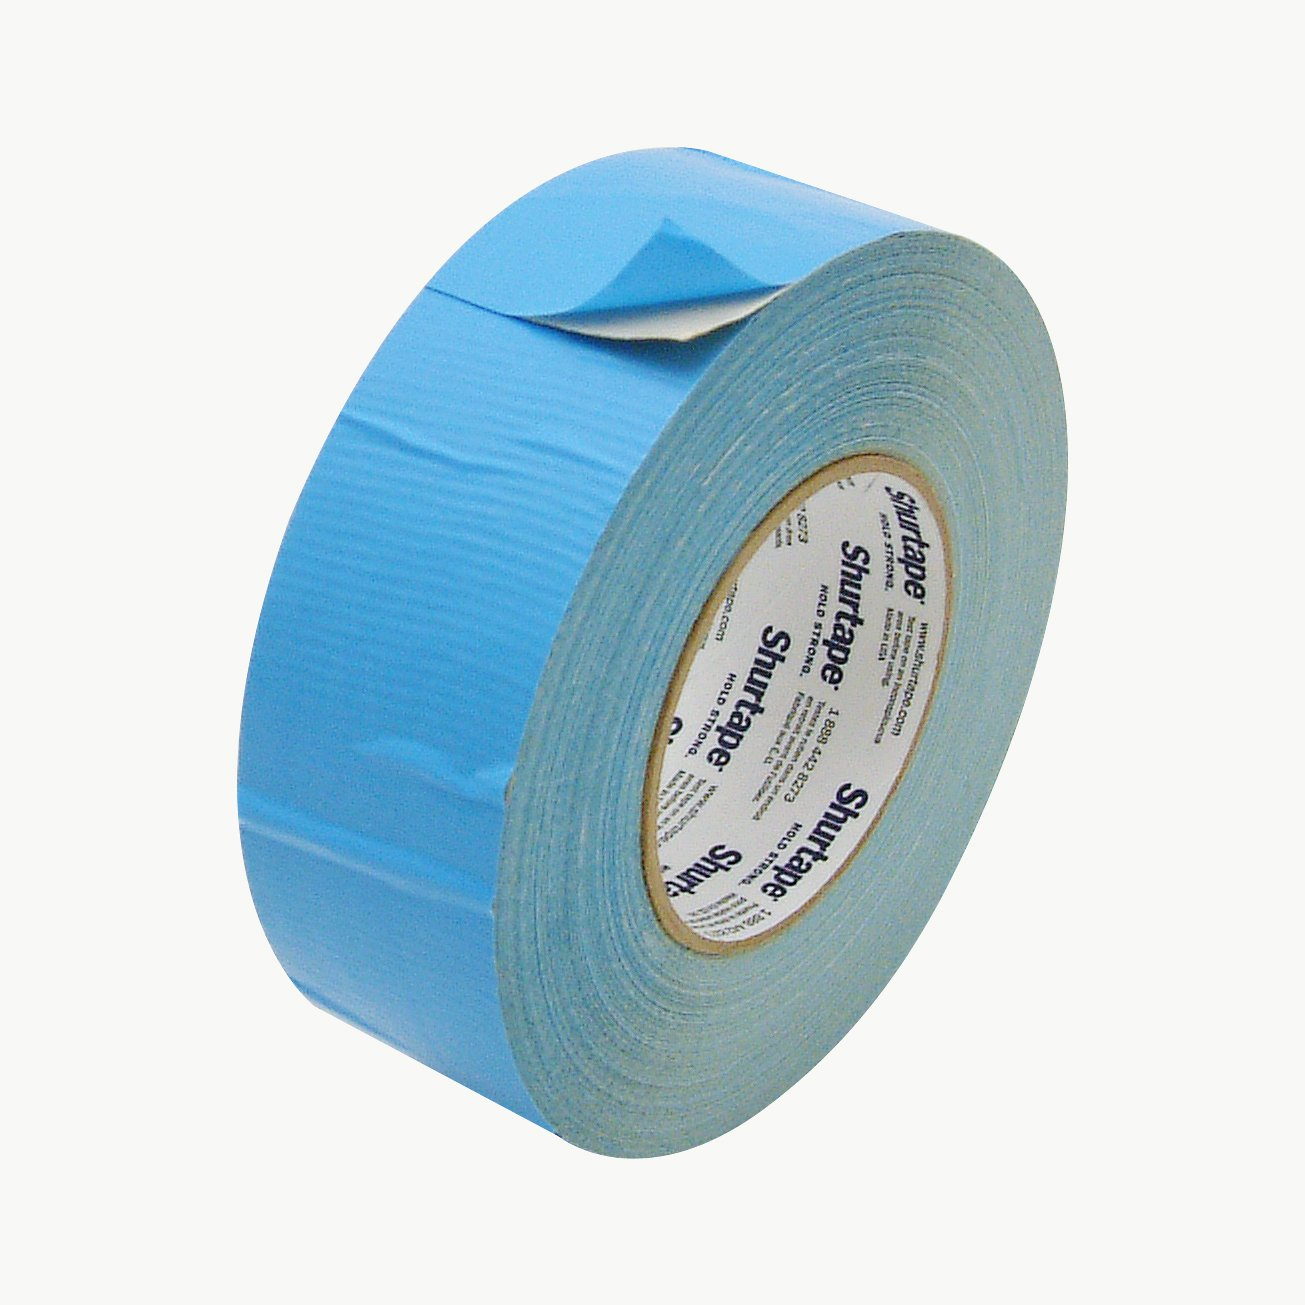 Shurtape DF-545/NAT236 DF-545 Double Coated Cloth Carpet Tape: 2'' x 36 yd, Natural